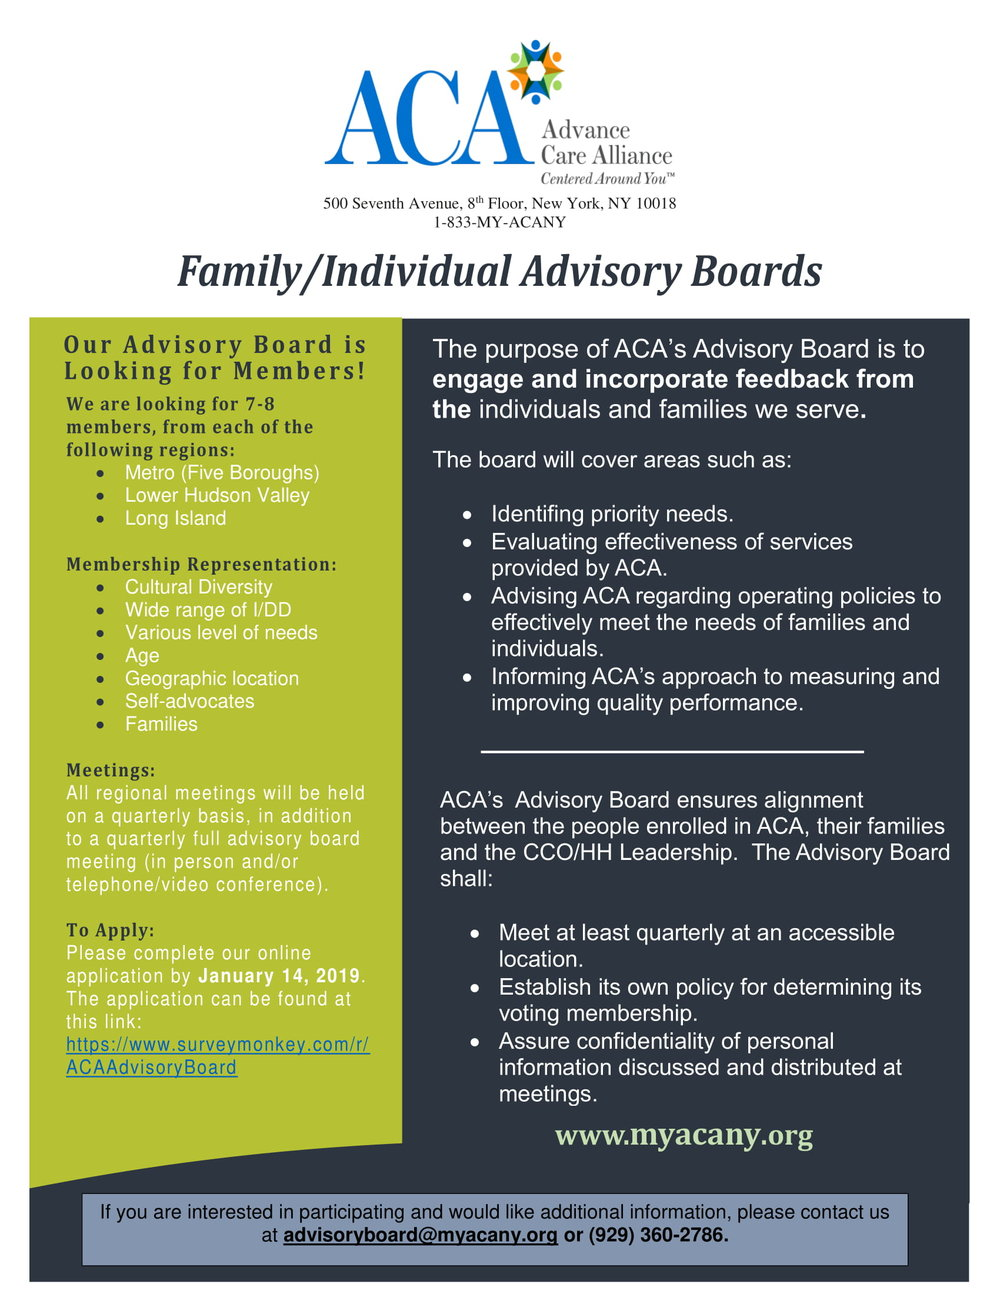 Advisory Board Flyer FINAL 2018-12-26 Update-1.jpg